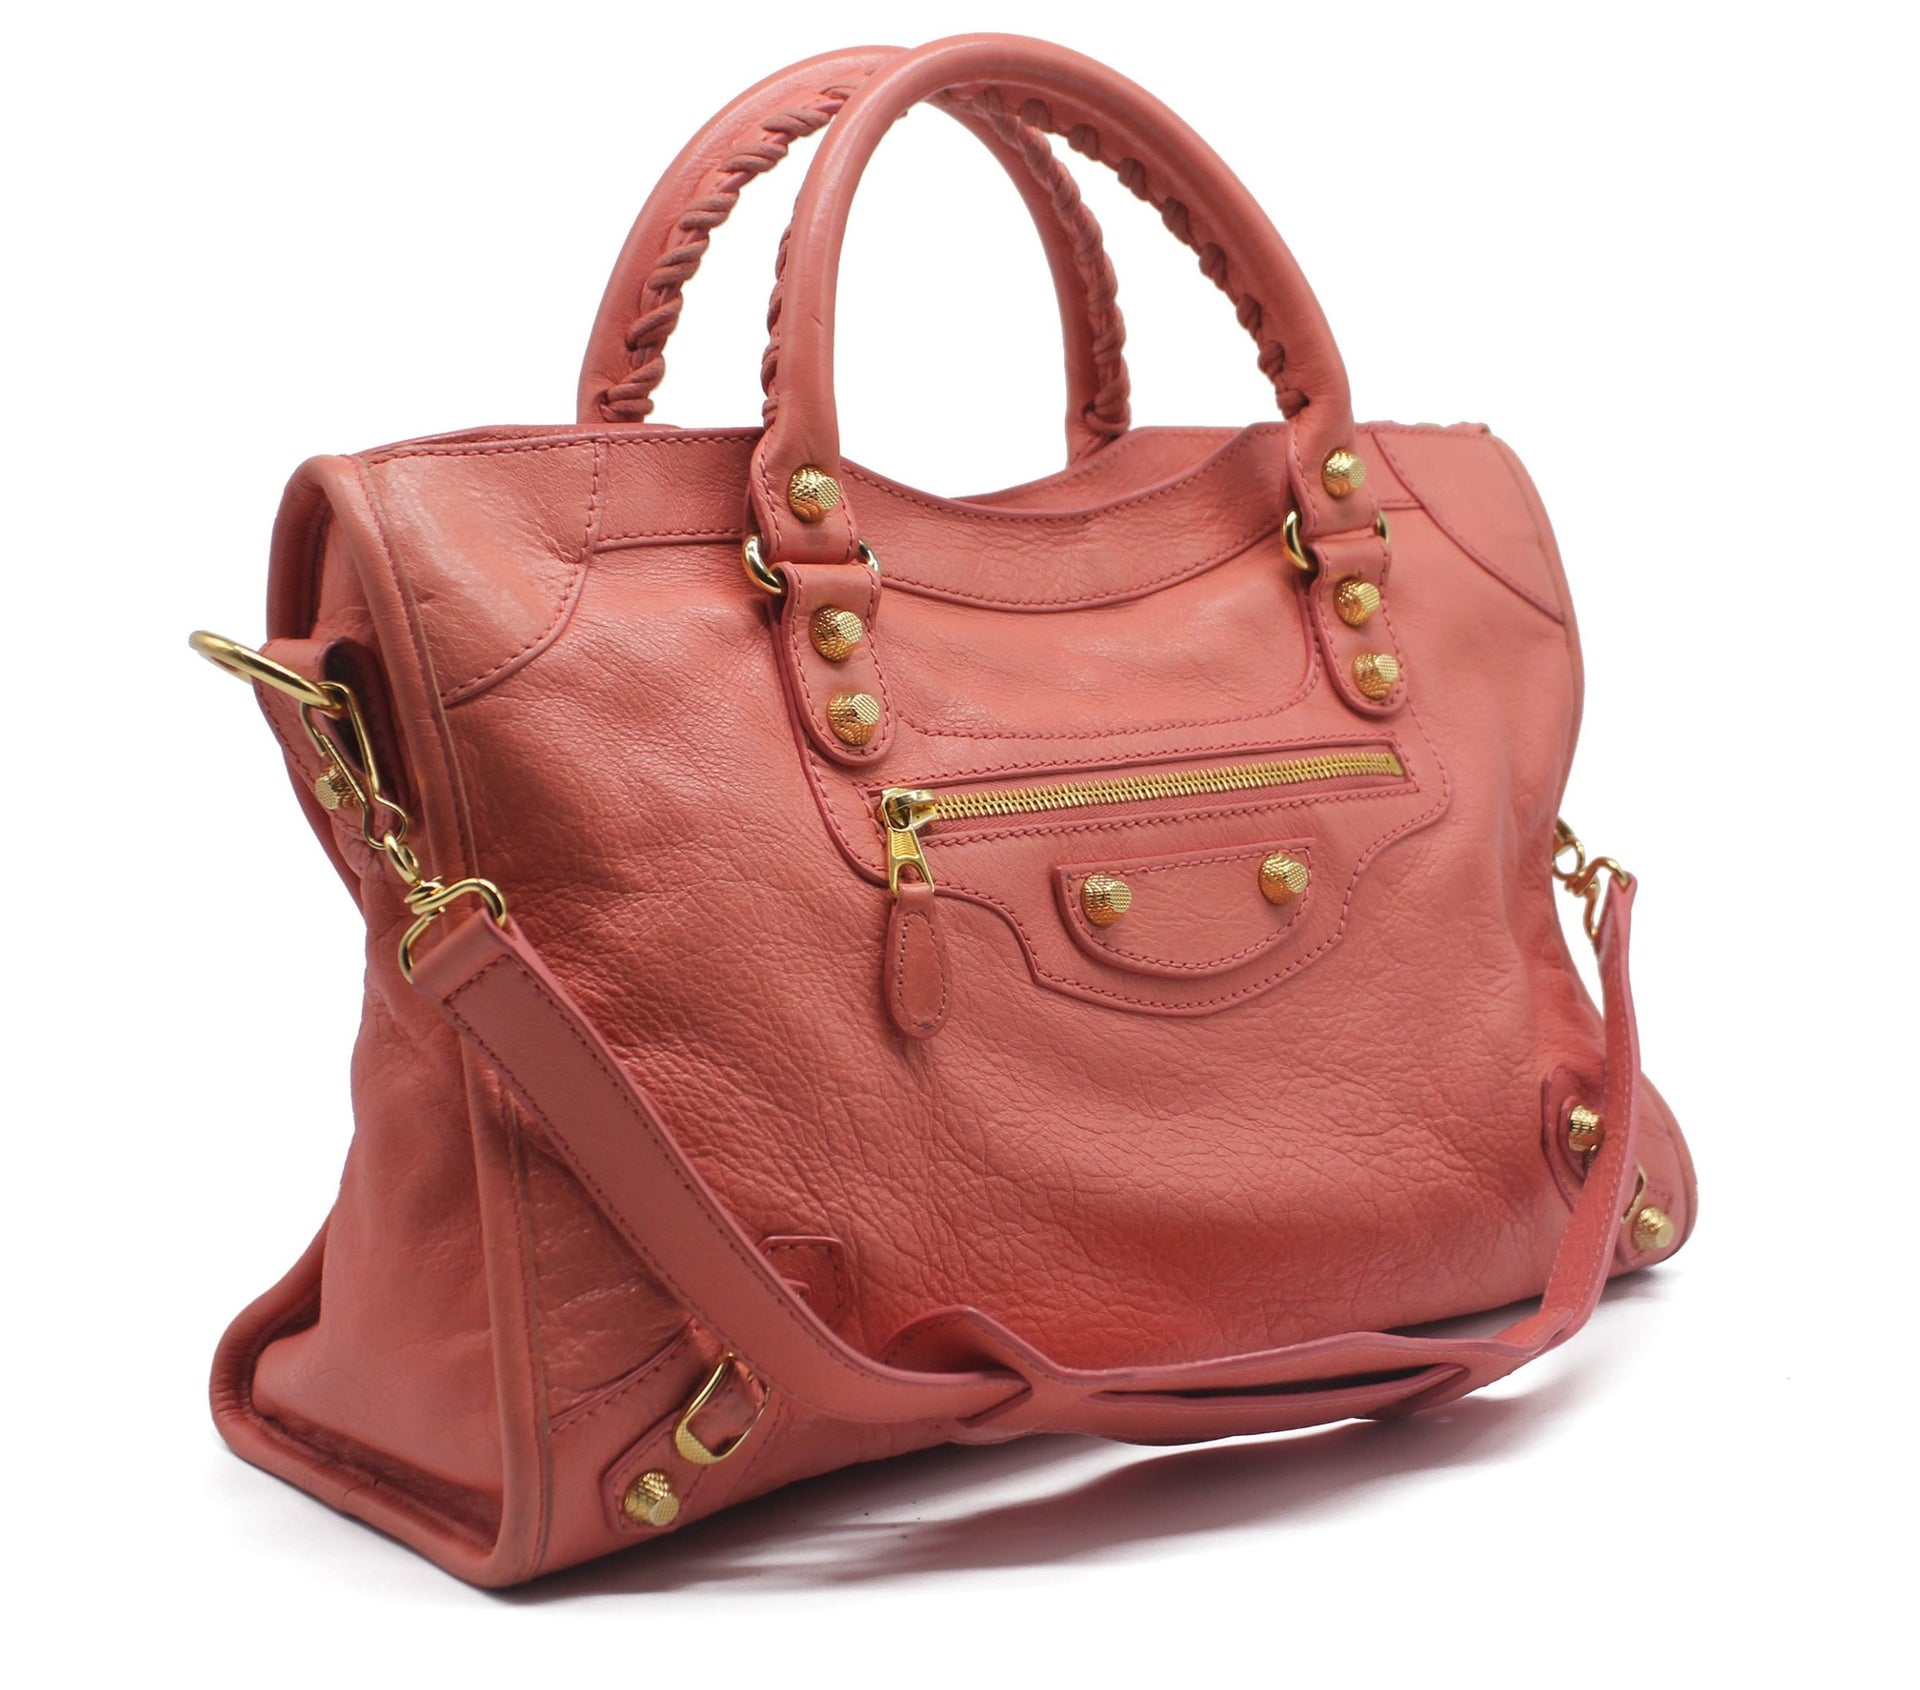 Giant 12 City Leather Tote